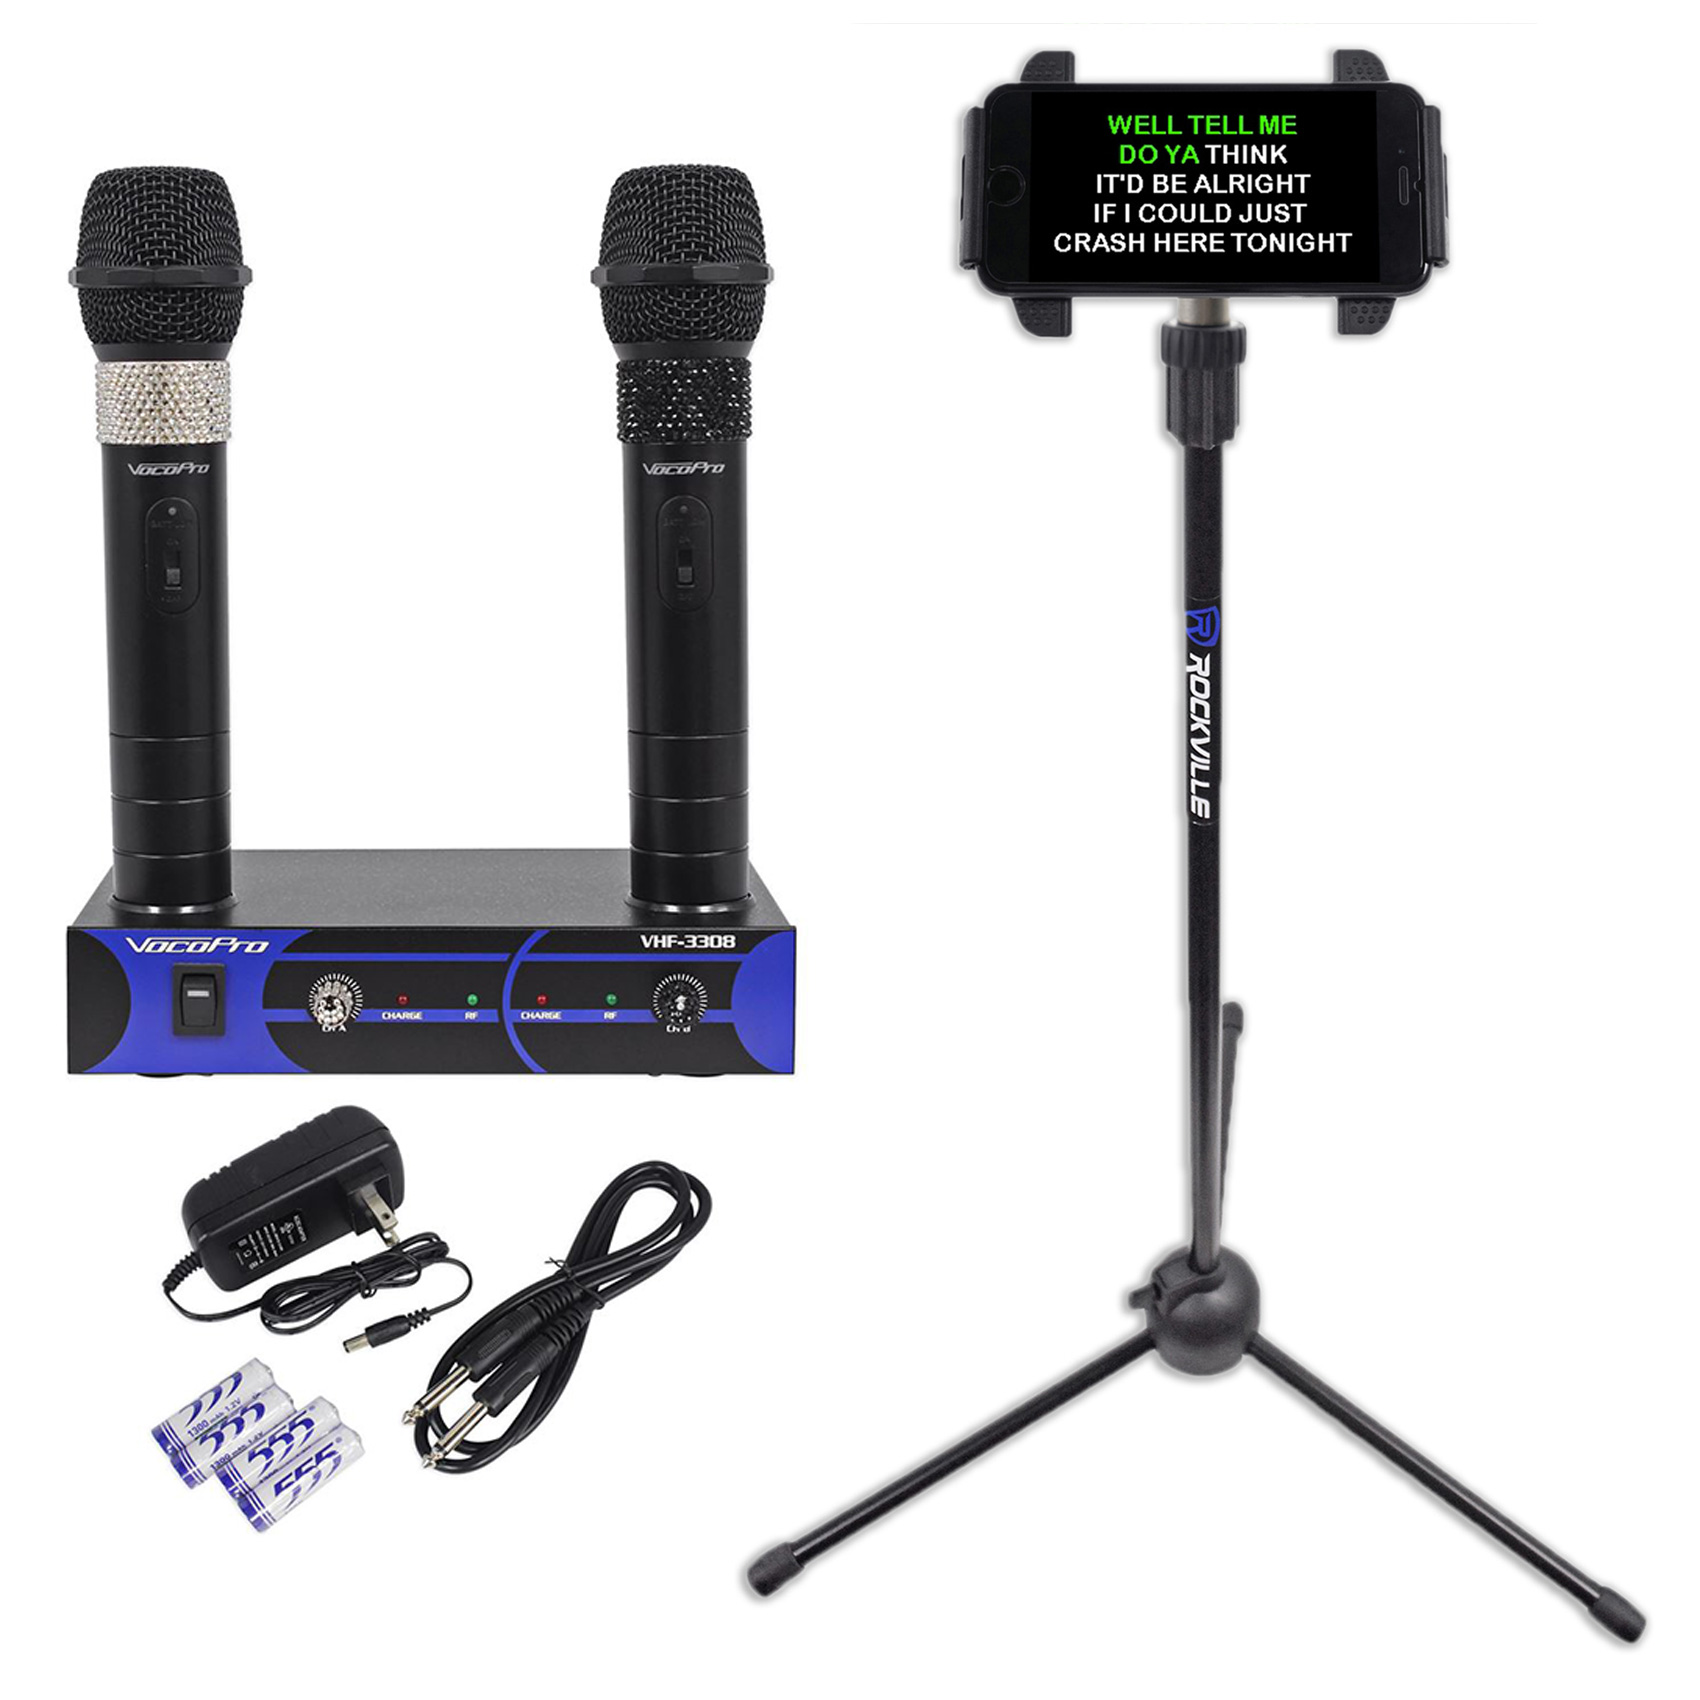 VocoPro VHF-3308-3 Rechargable VHF Wireless Karaoke Microphones+Tablet Stand by VocoPro